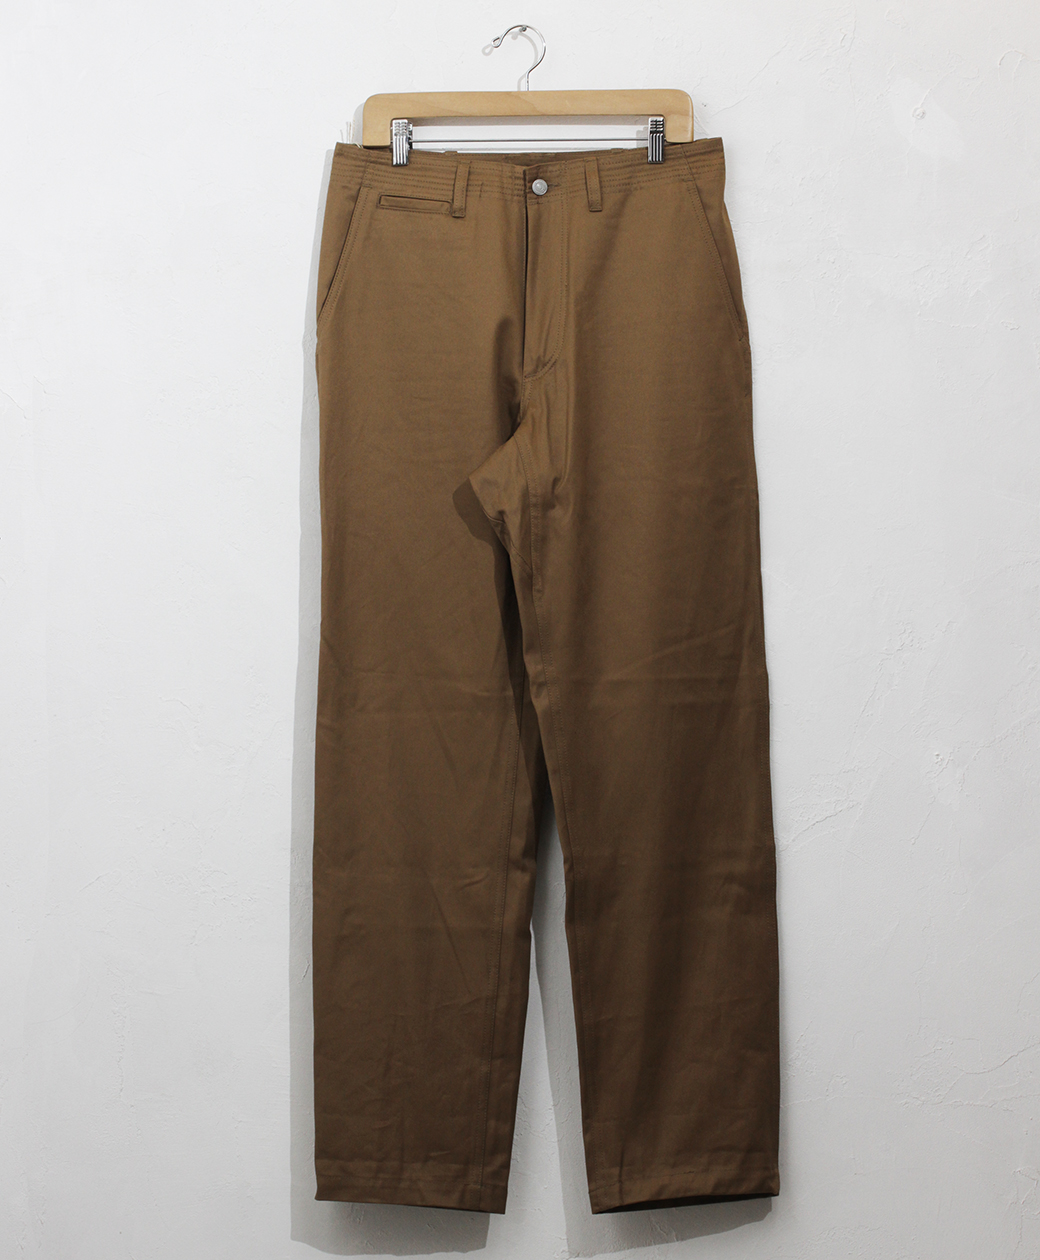 SASSAFRAS Sprayer Stream Pants(High Count Twill)